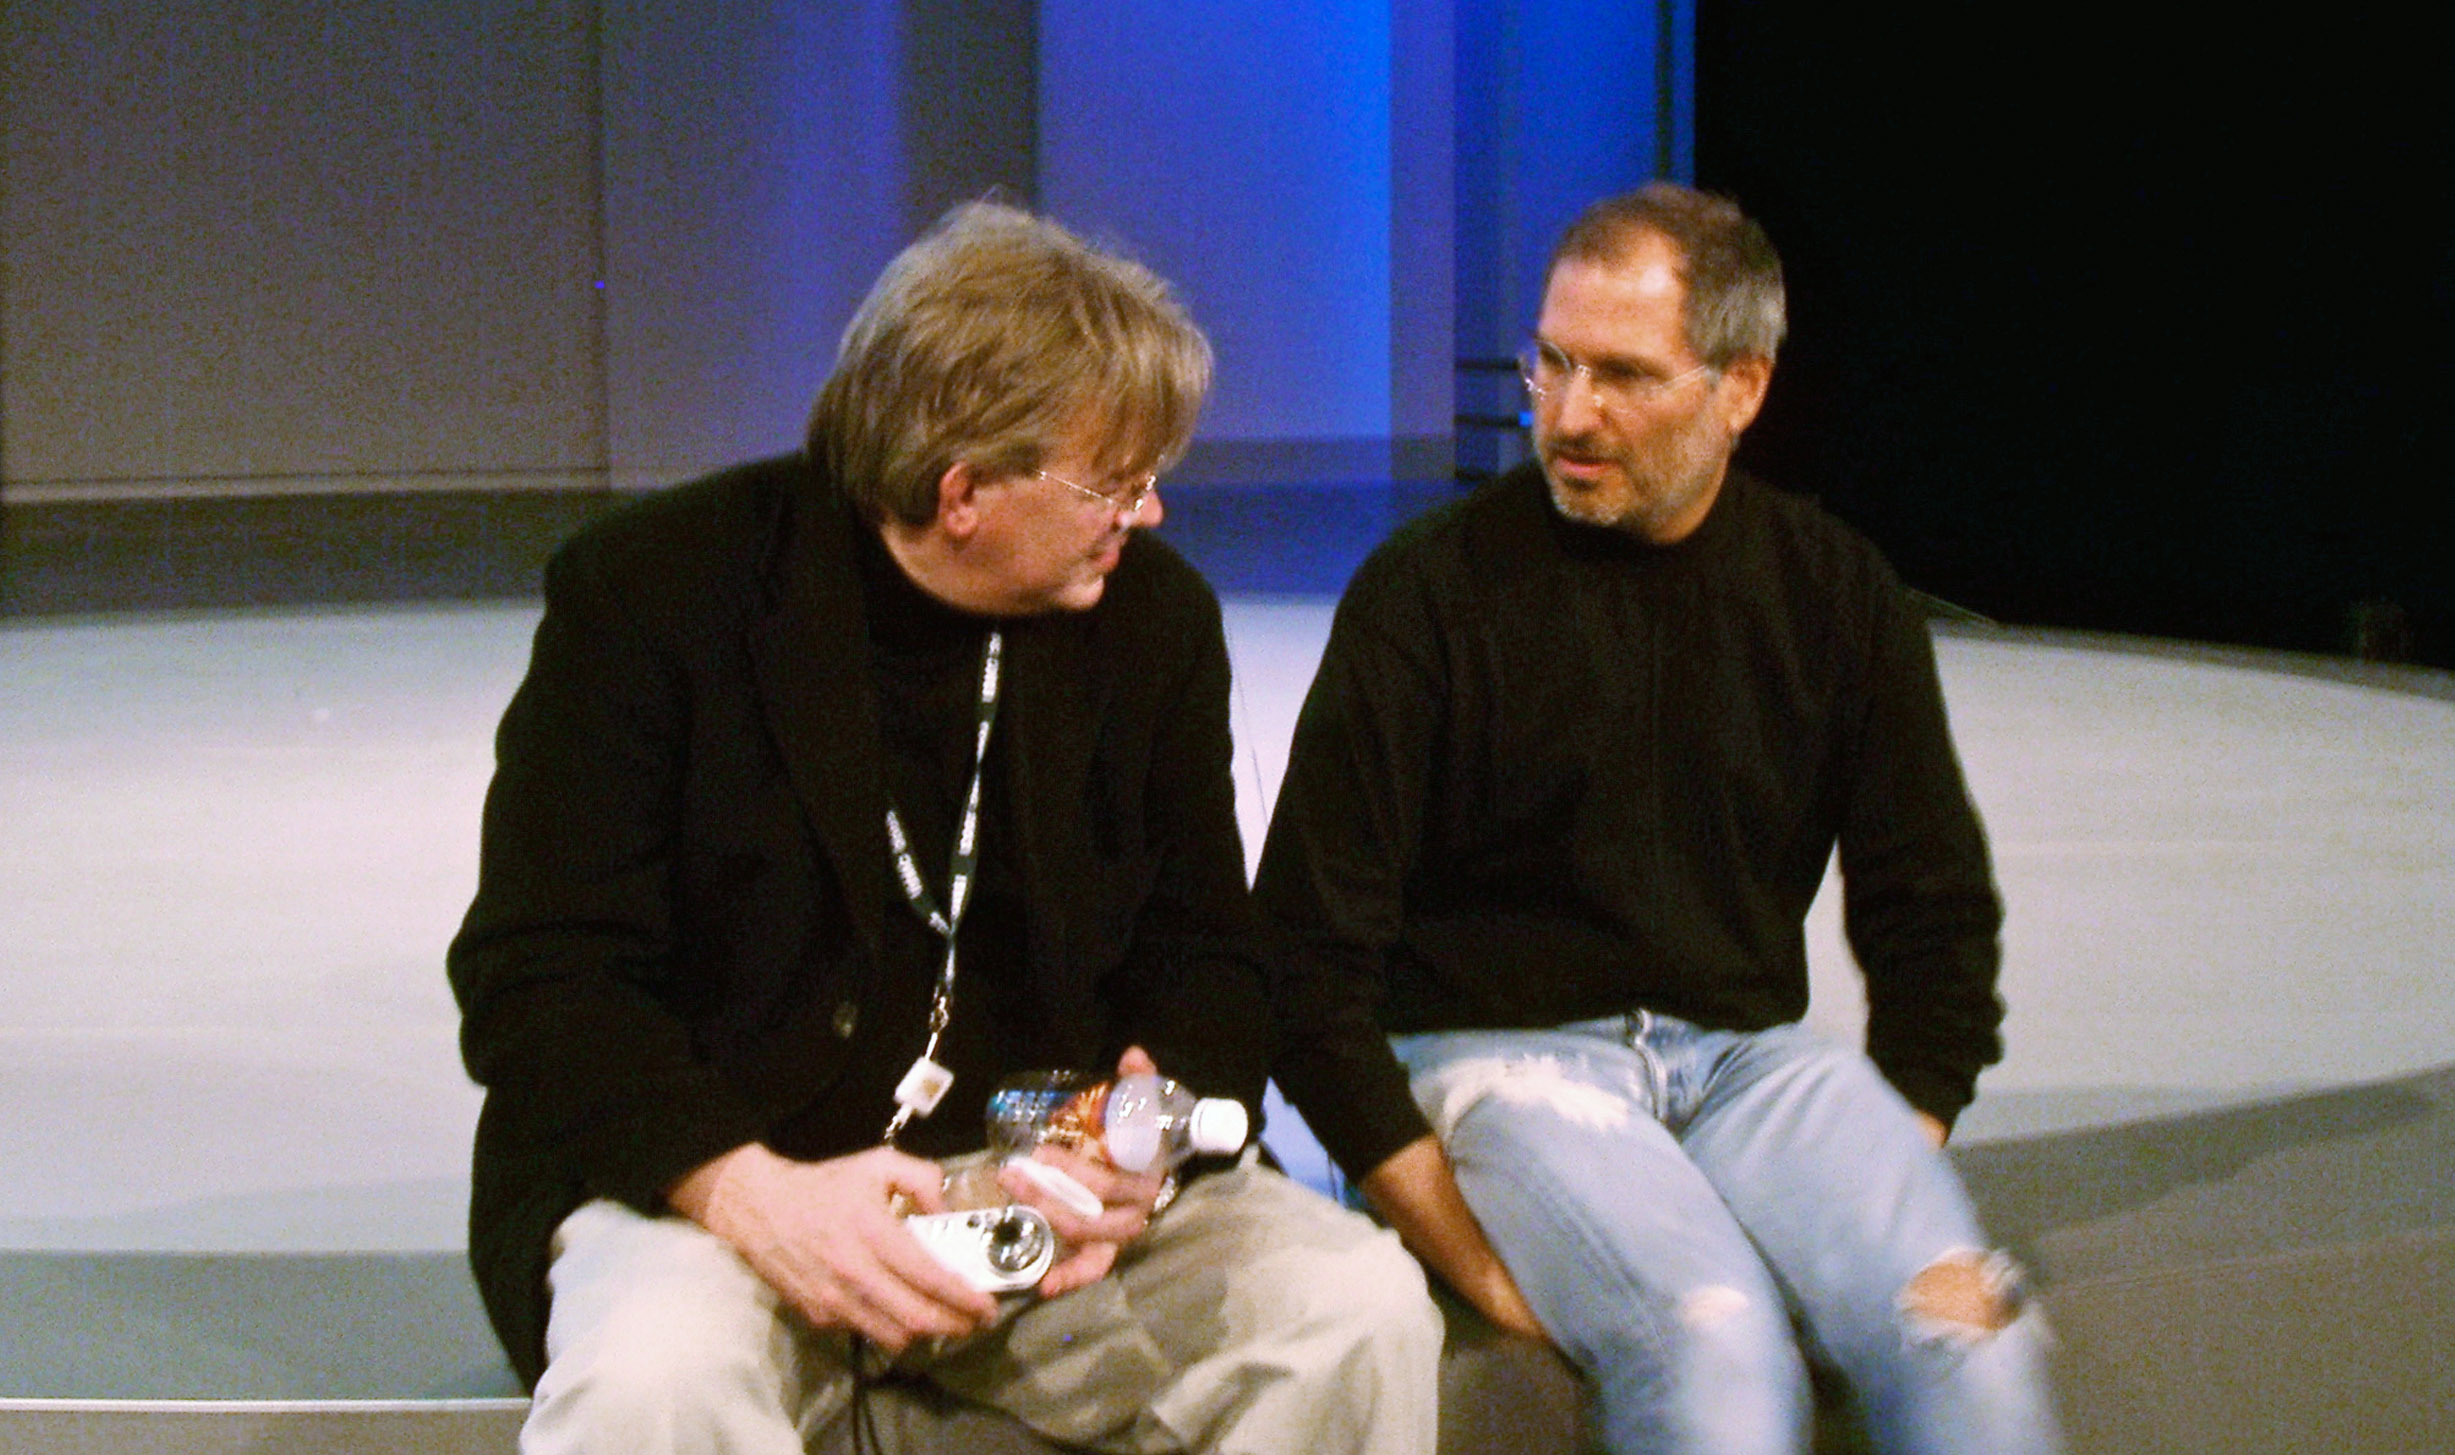 2001: Downtime: The men confer before Schlender (left) interviews Jobs and Andy Grove at a private Intel event.